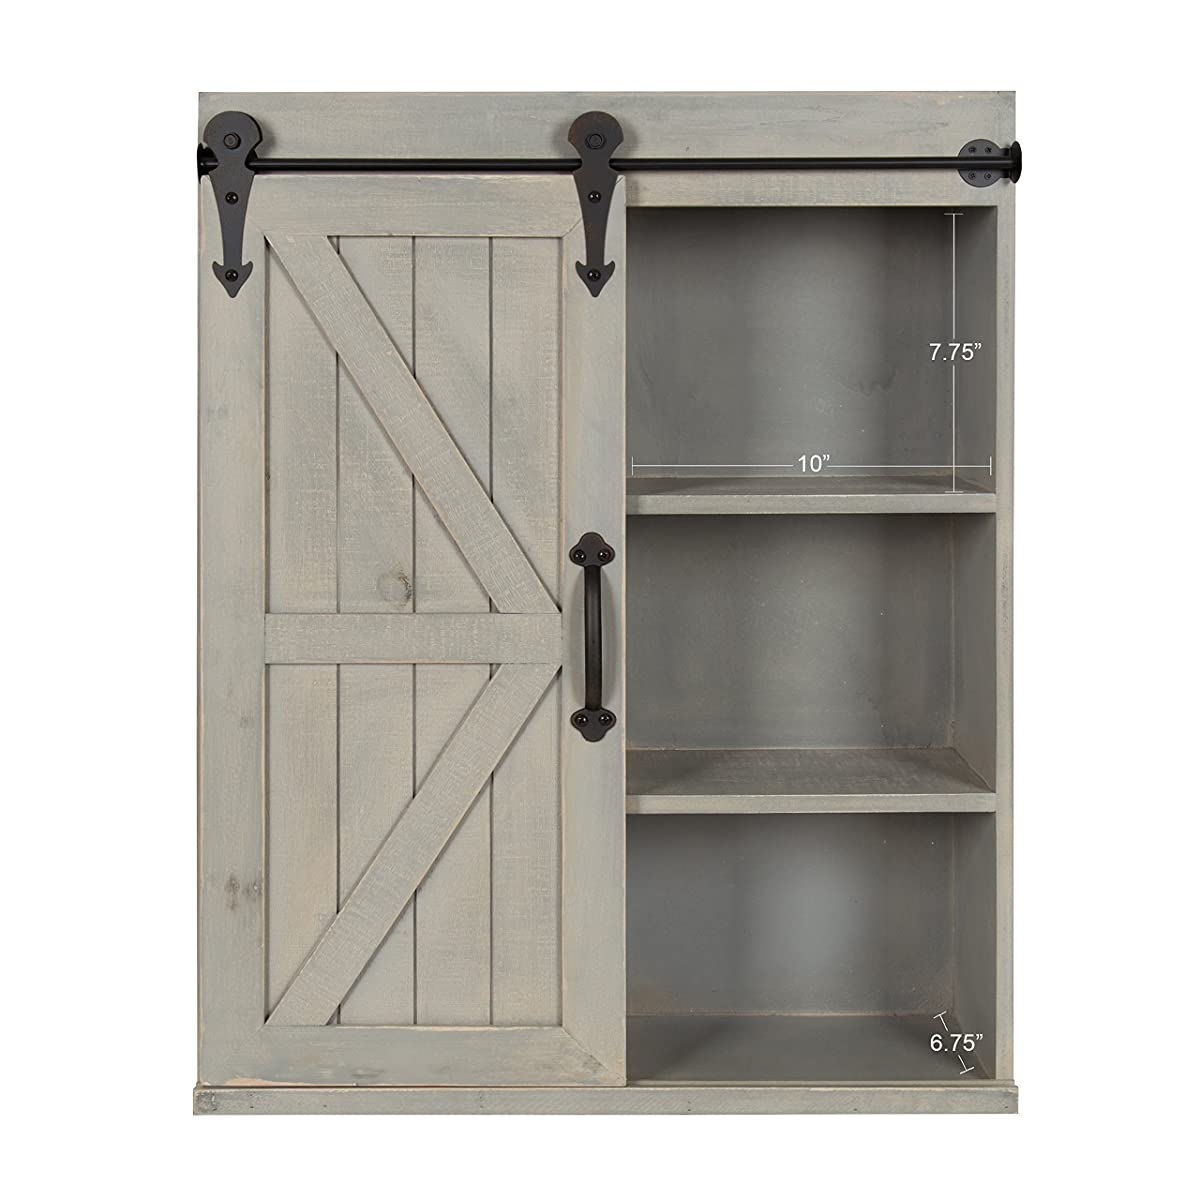 Kate and Laurel Cates Wood Wall Storage Cabinet with Sliding Barn Door, Rustic Gray